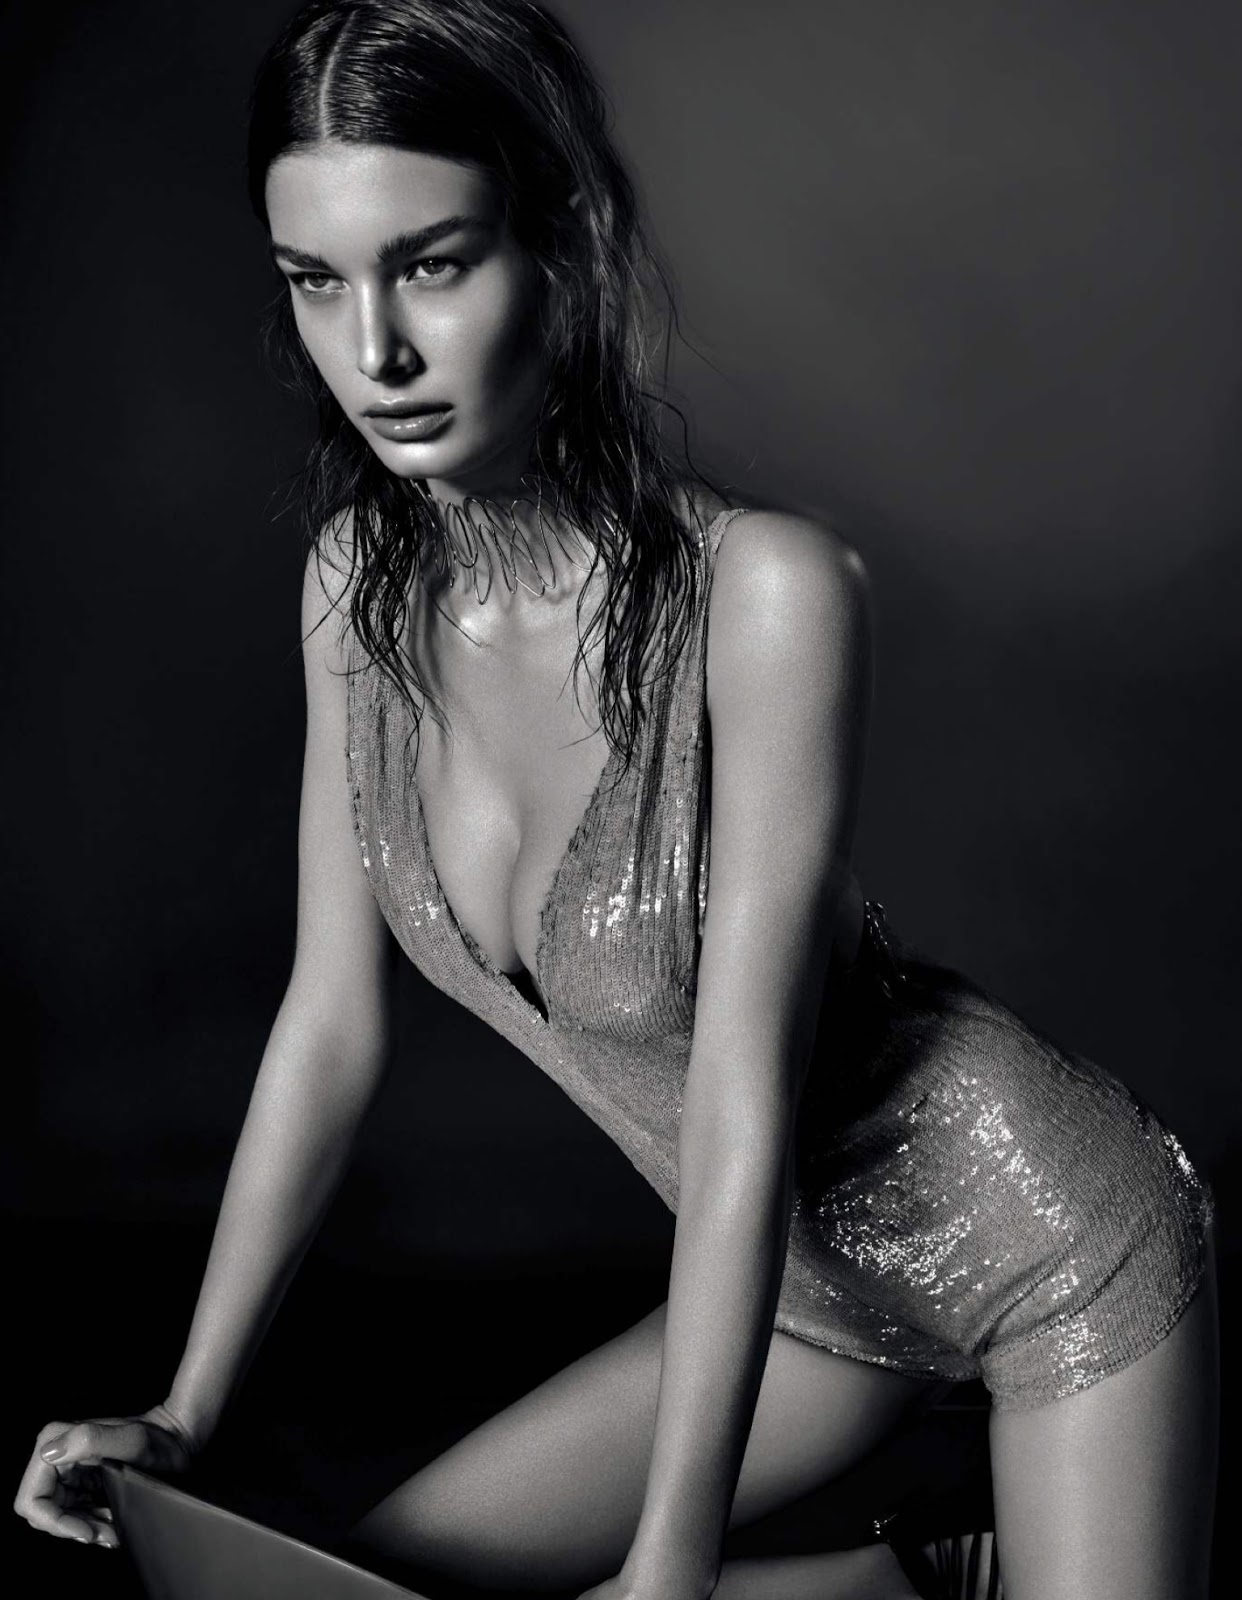 Hot Ophelie Guillermand nudes (99 photos), Pussy, Paparazzi, Selfie, butt 2015